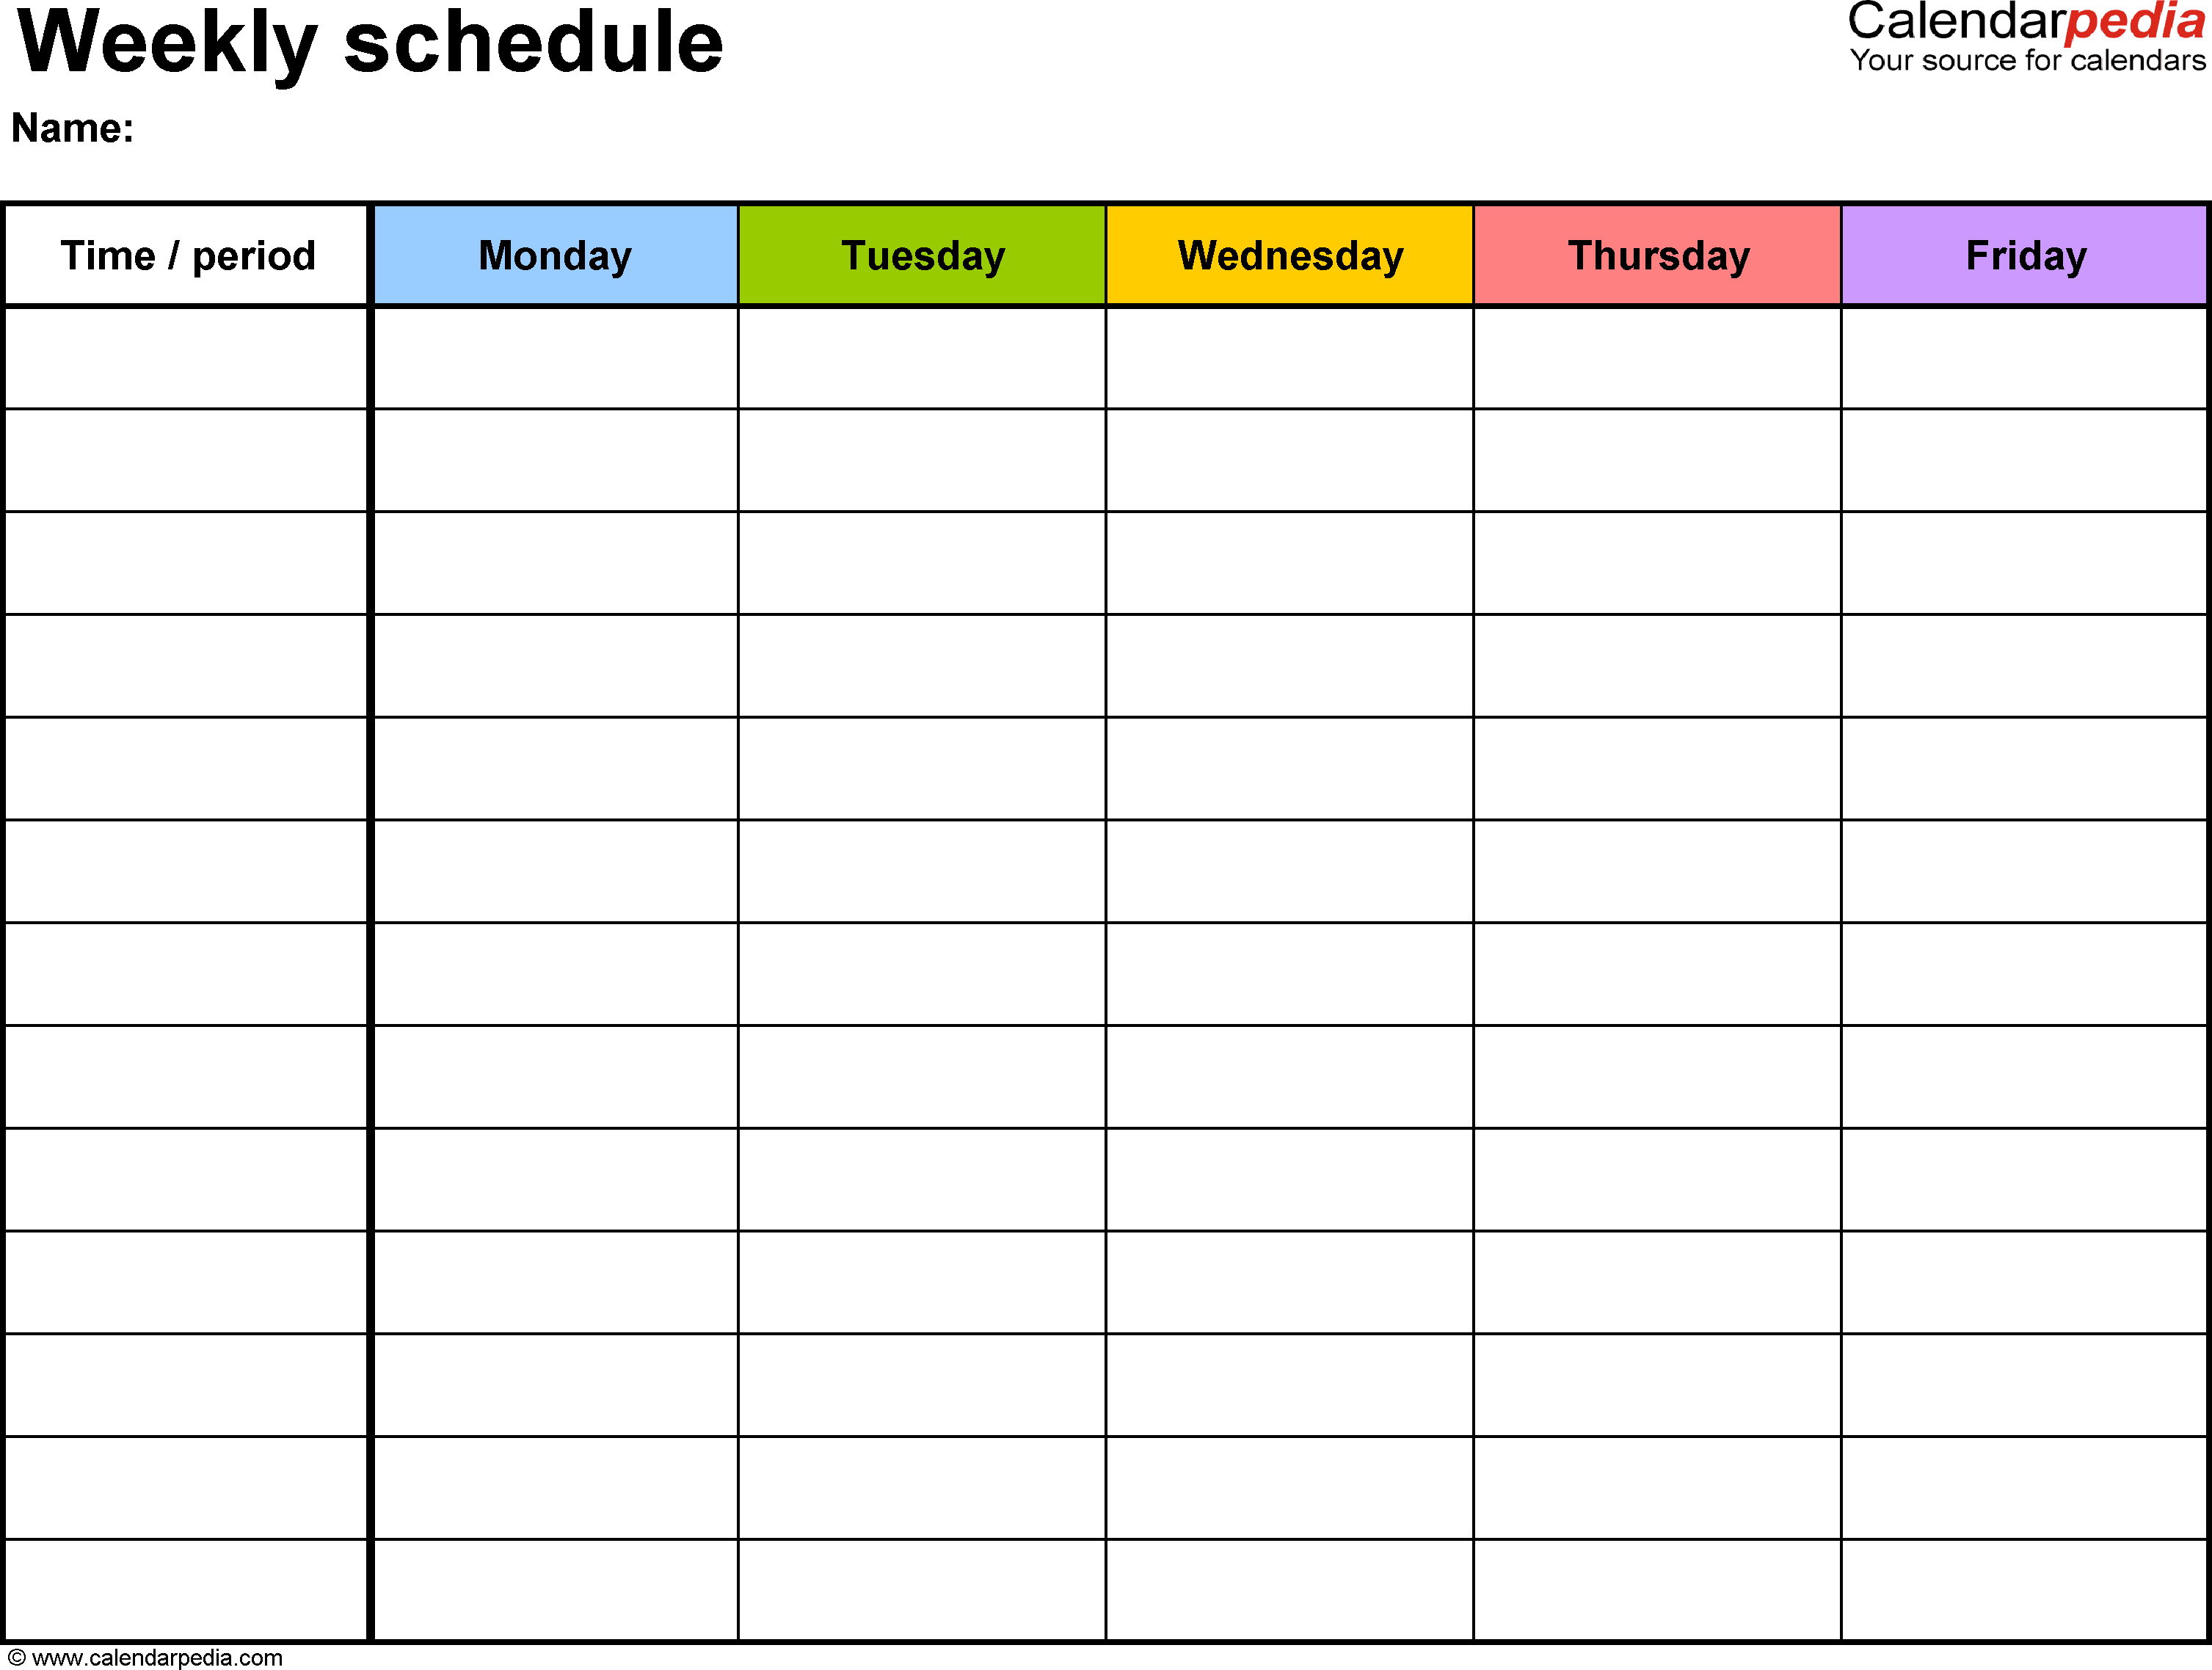 Weekly Schedule Template For Word Version 1: Landscape, 1 regarding Calendar Monday Through Friday